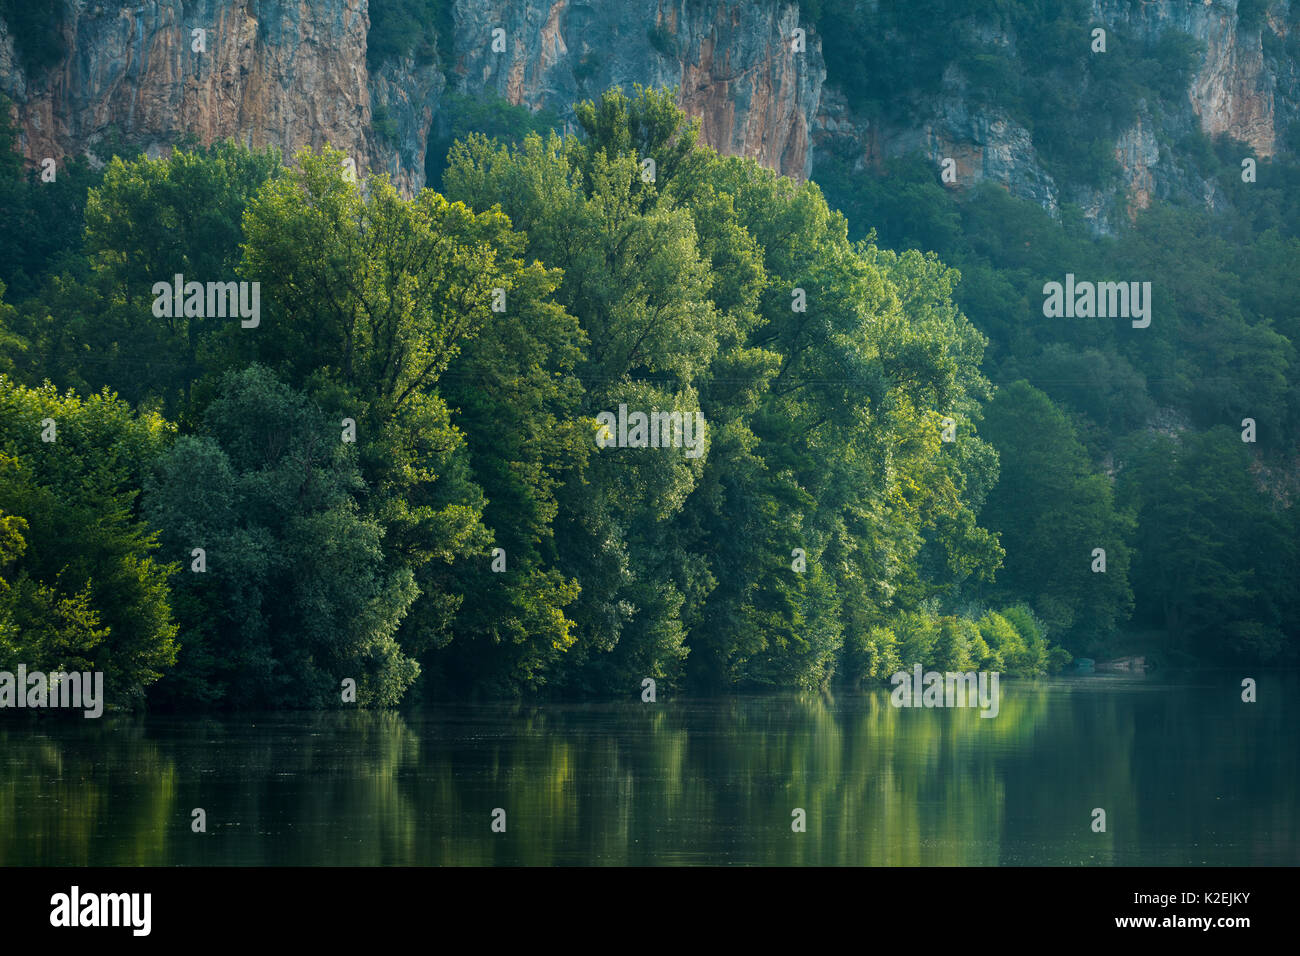 River Lot at Vers, Quercy, France, July 2015. - Stock Image